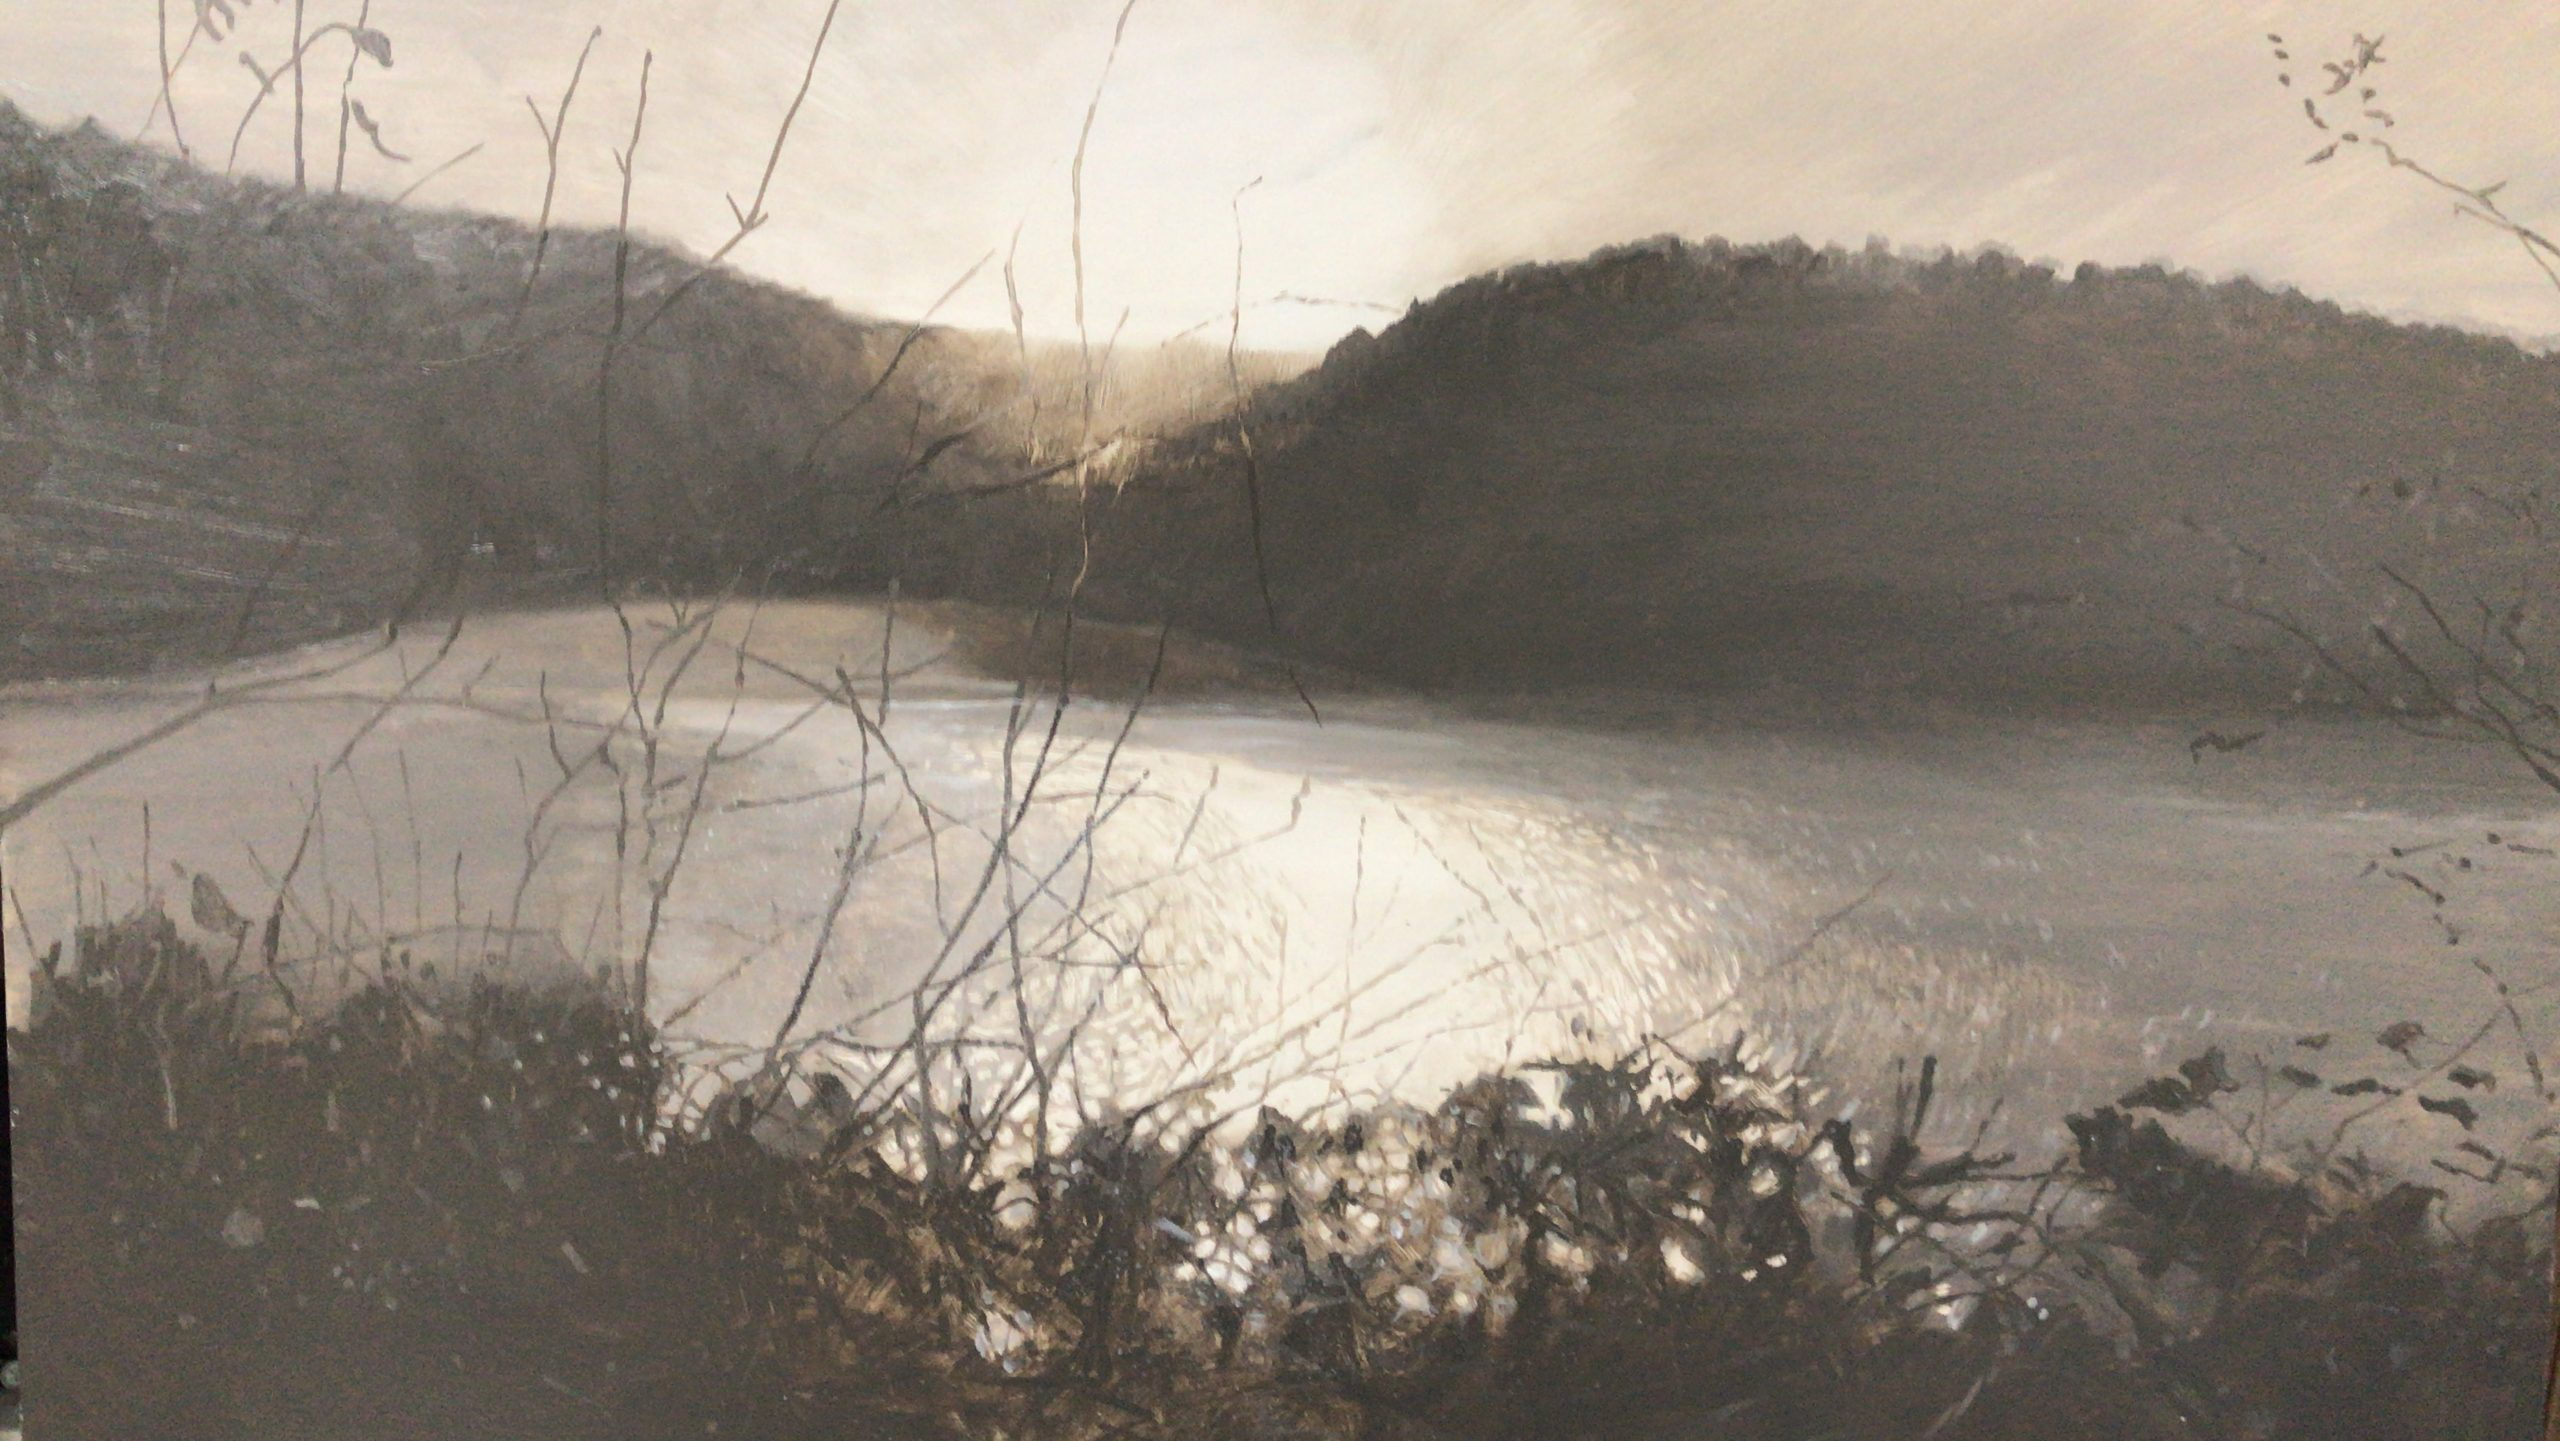 <br><em>Looking over to Mill Bay</em>, 2020<br>Greg Ramsden<br>Oil on panel, 30 x 40 cm